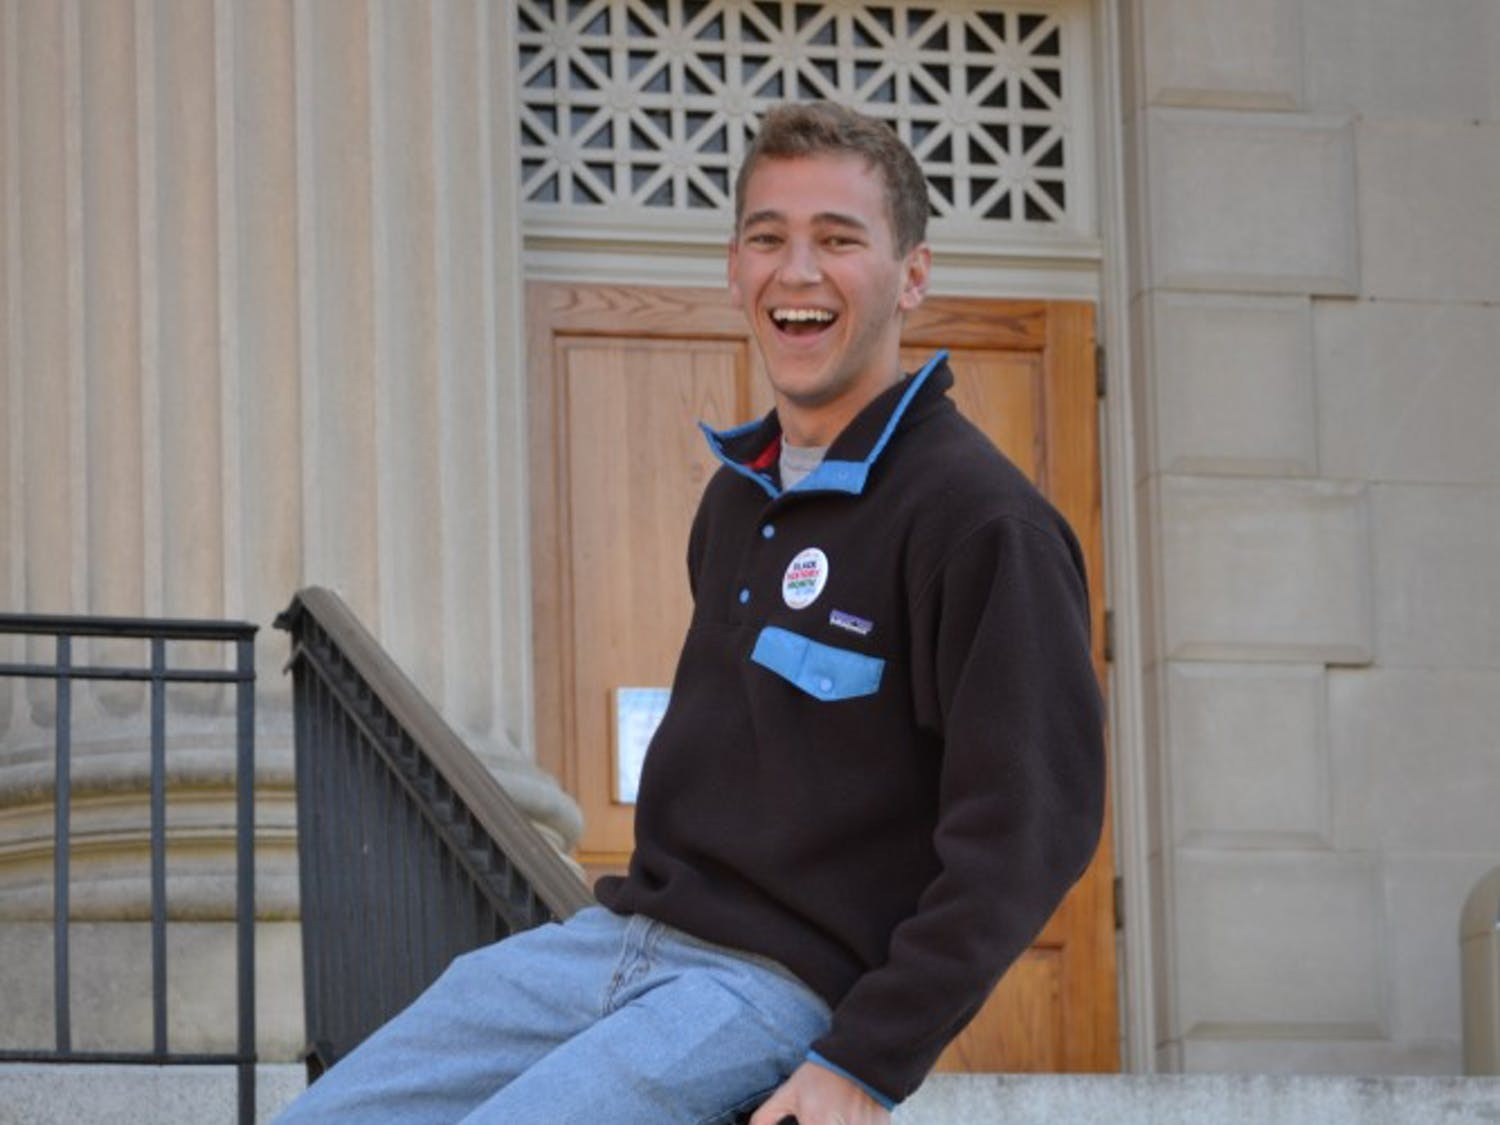 Will Leimenstoll slides down the banister in front of Wilson Library.